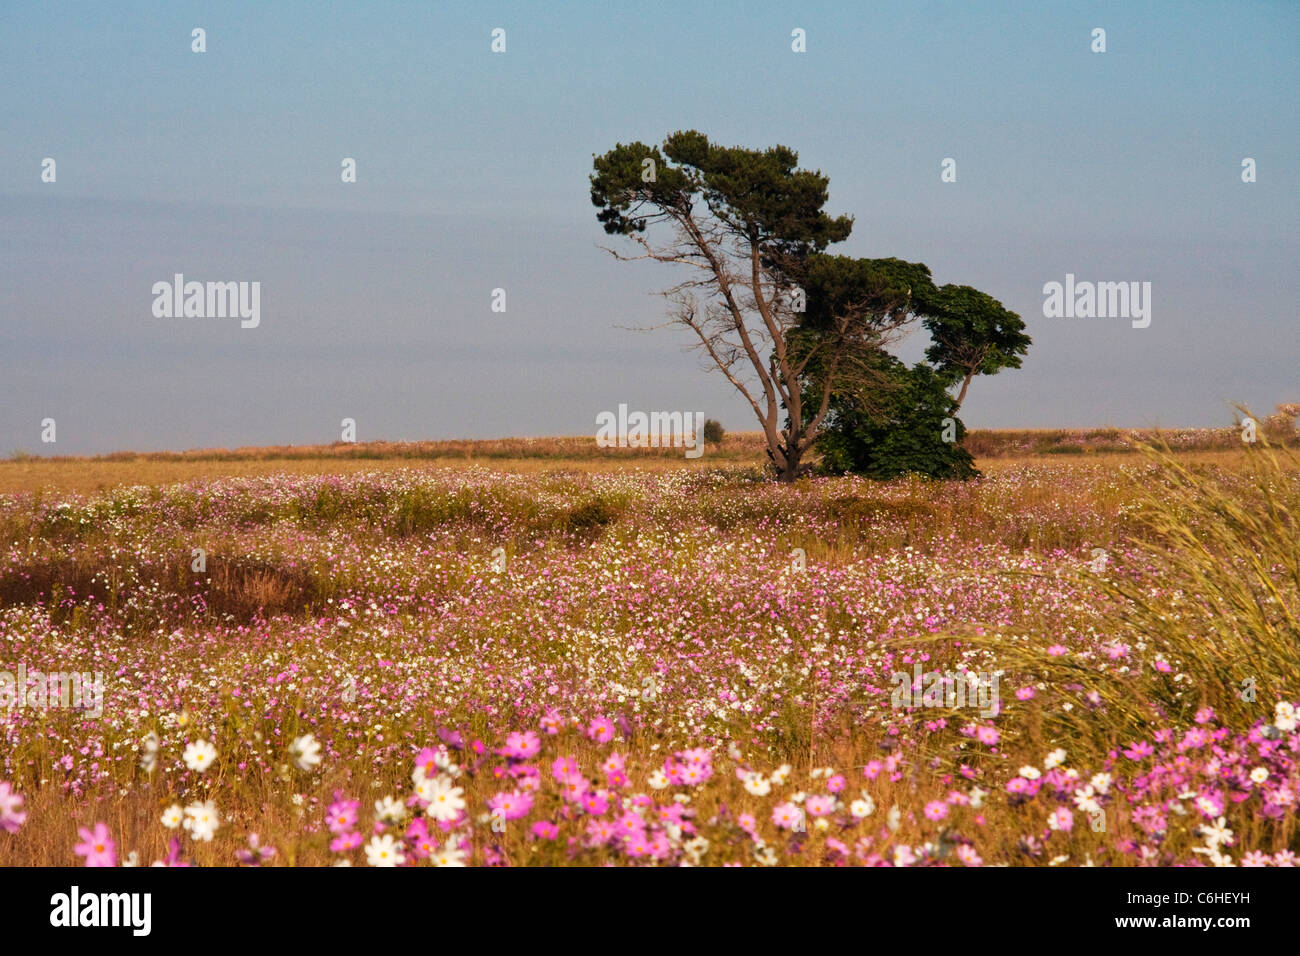 Highveld landscape with a pine tree surrounded by a field of cosmos - Stock Image